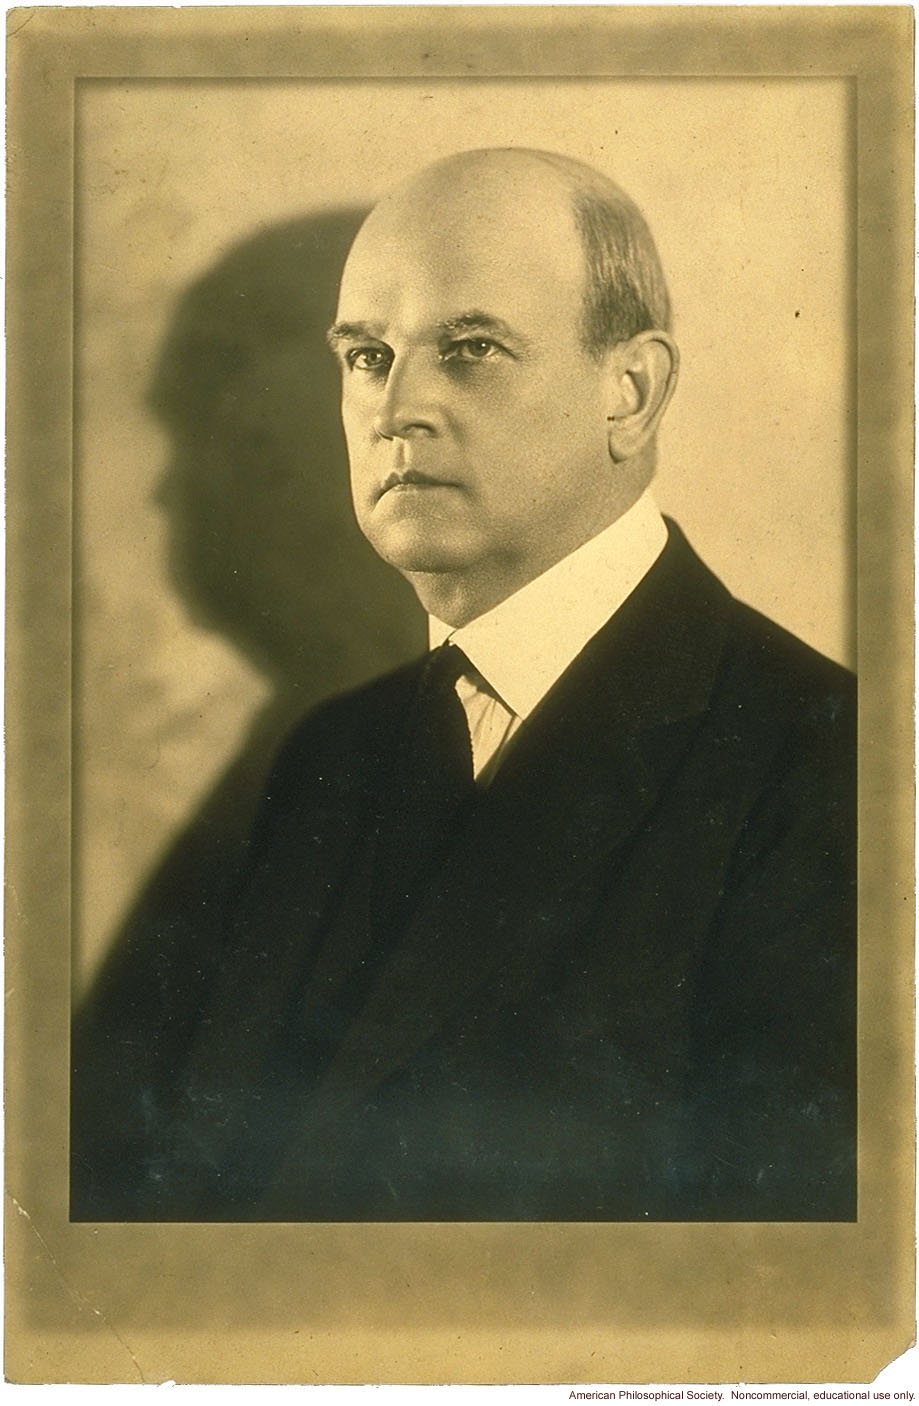 Harry Olson, Board of Directors, American Eugenics Society; Chief Judge of the Municipal Court of Chicago